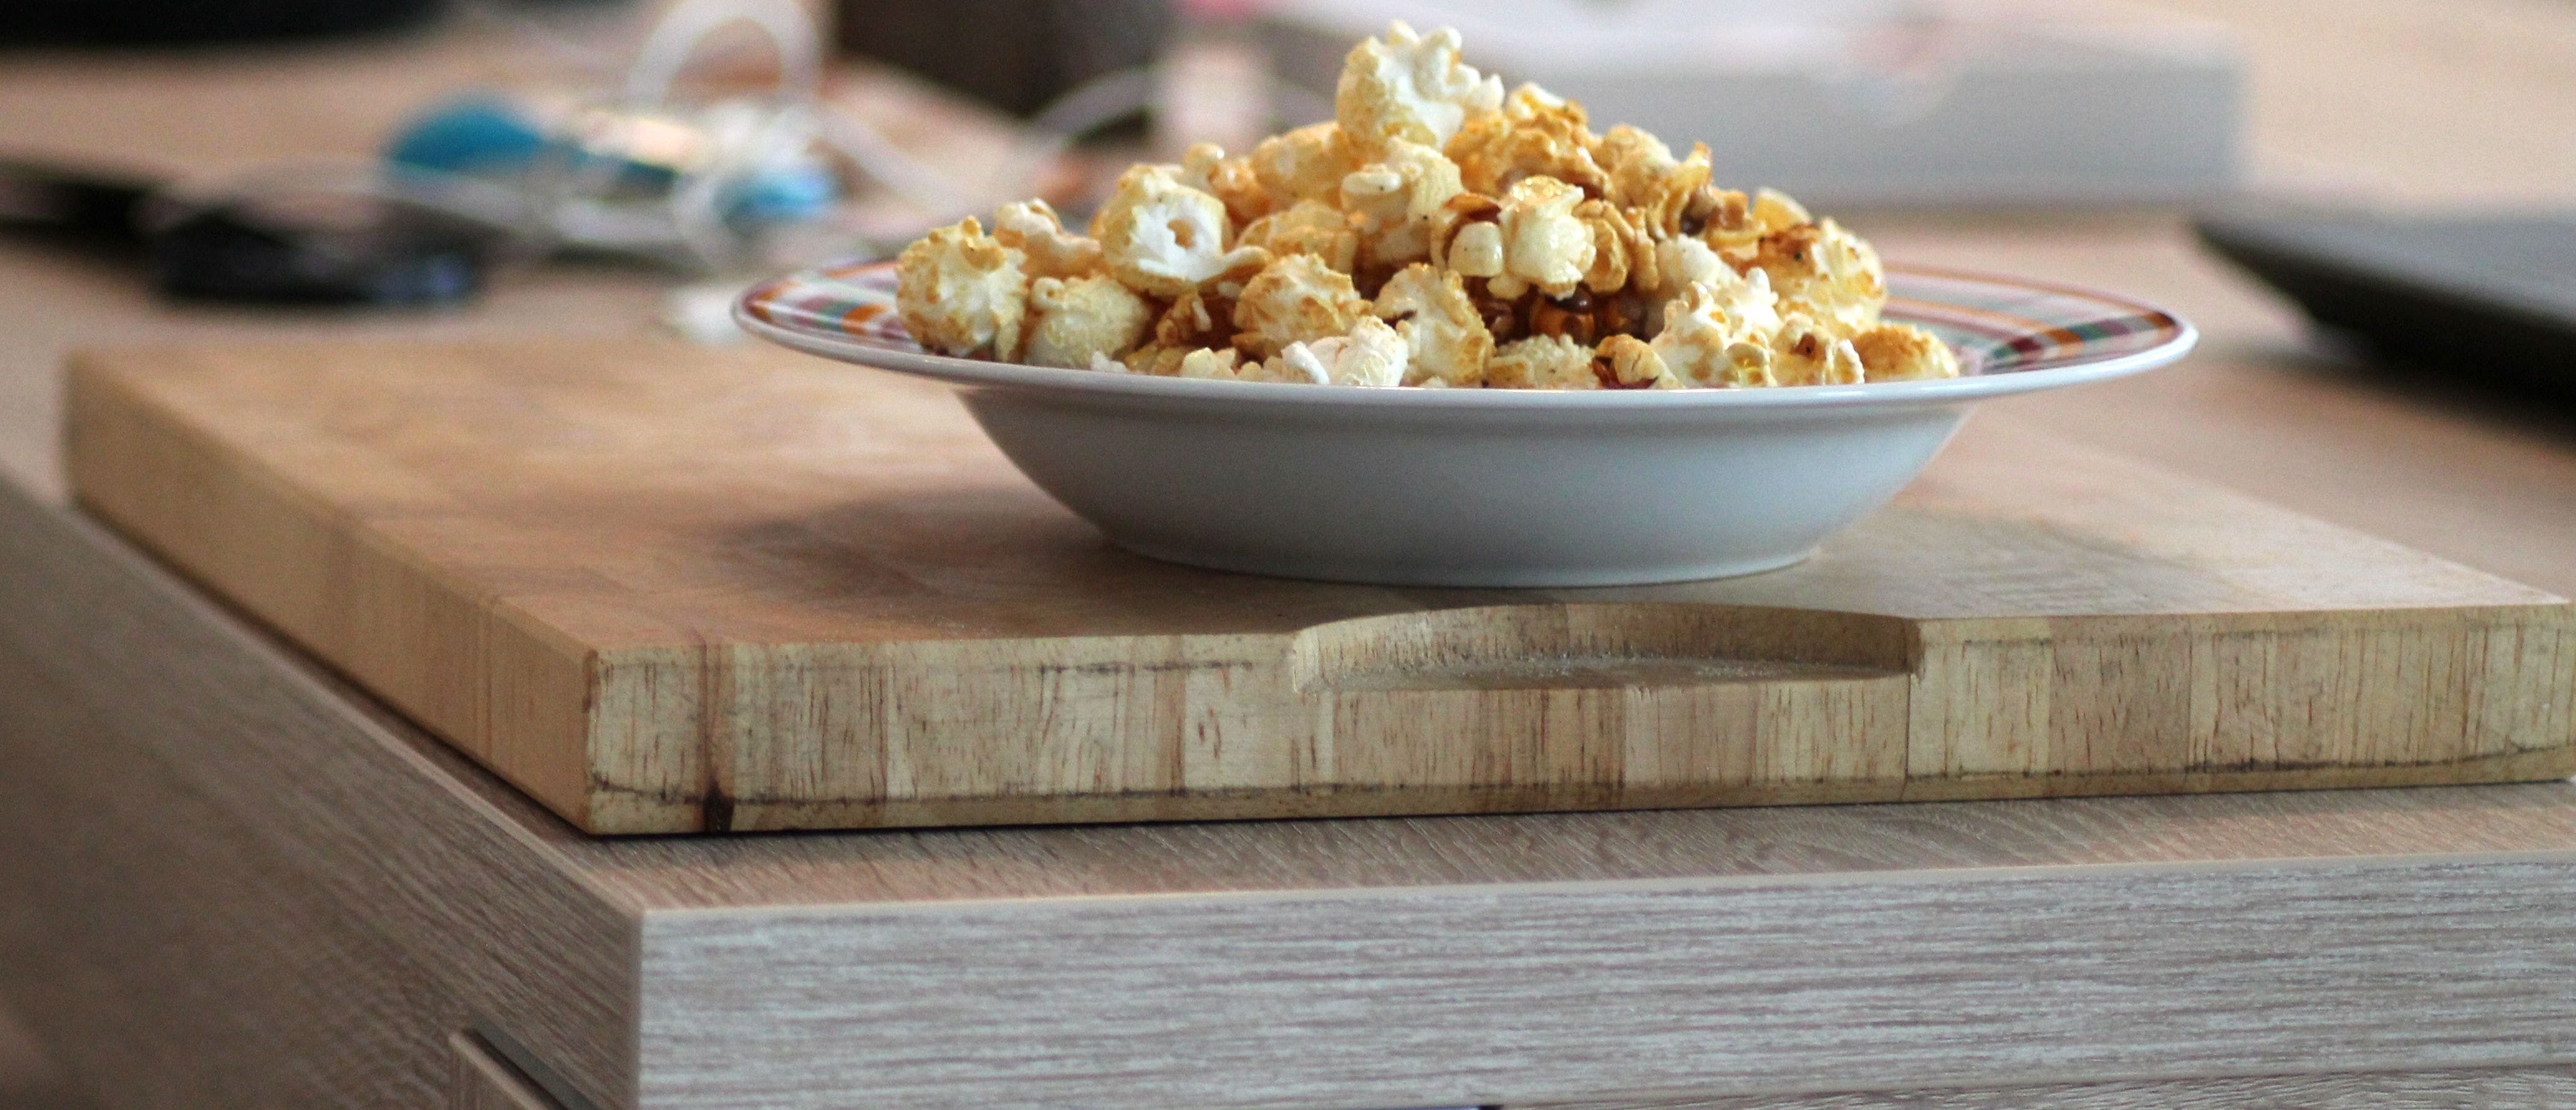 Popcorn in Bowl Placed on Chopping Board